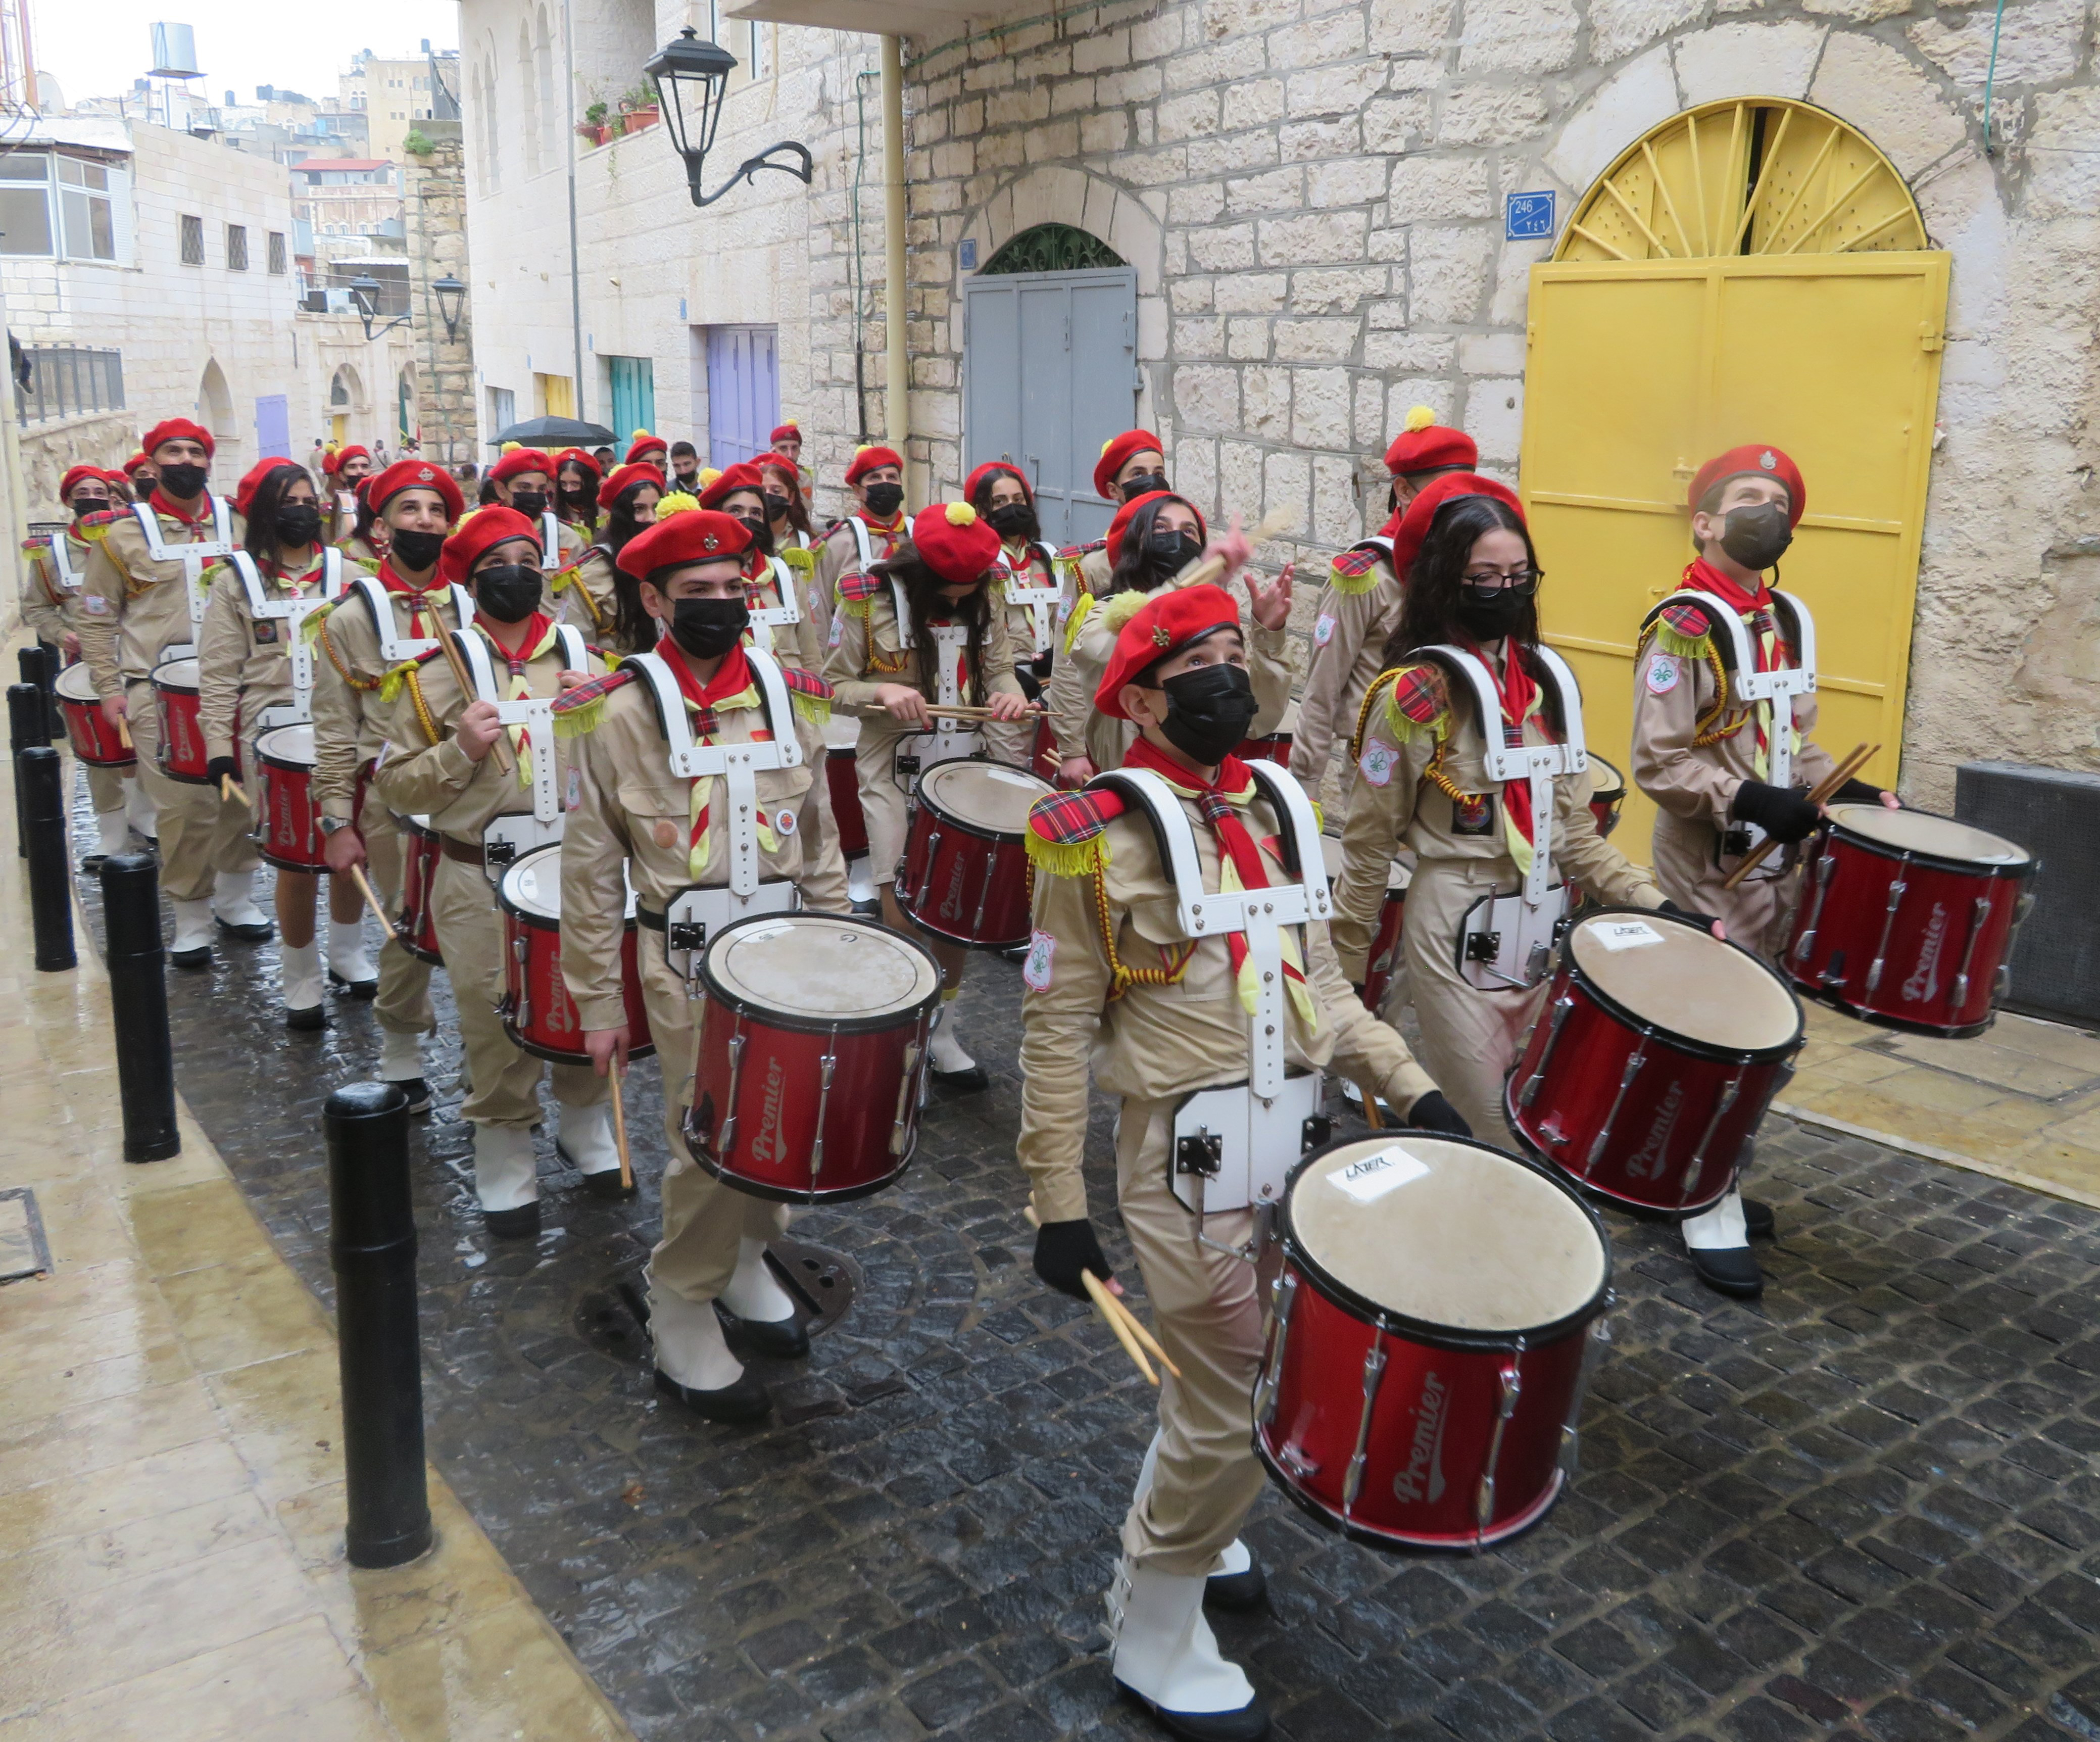 Masked and marching: Palestinian scout troops on Christmas Eve morning in Bethlehem.